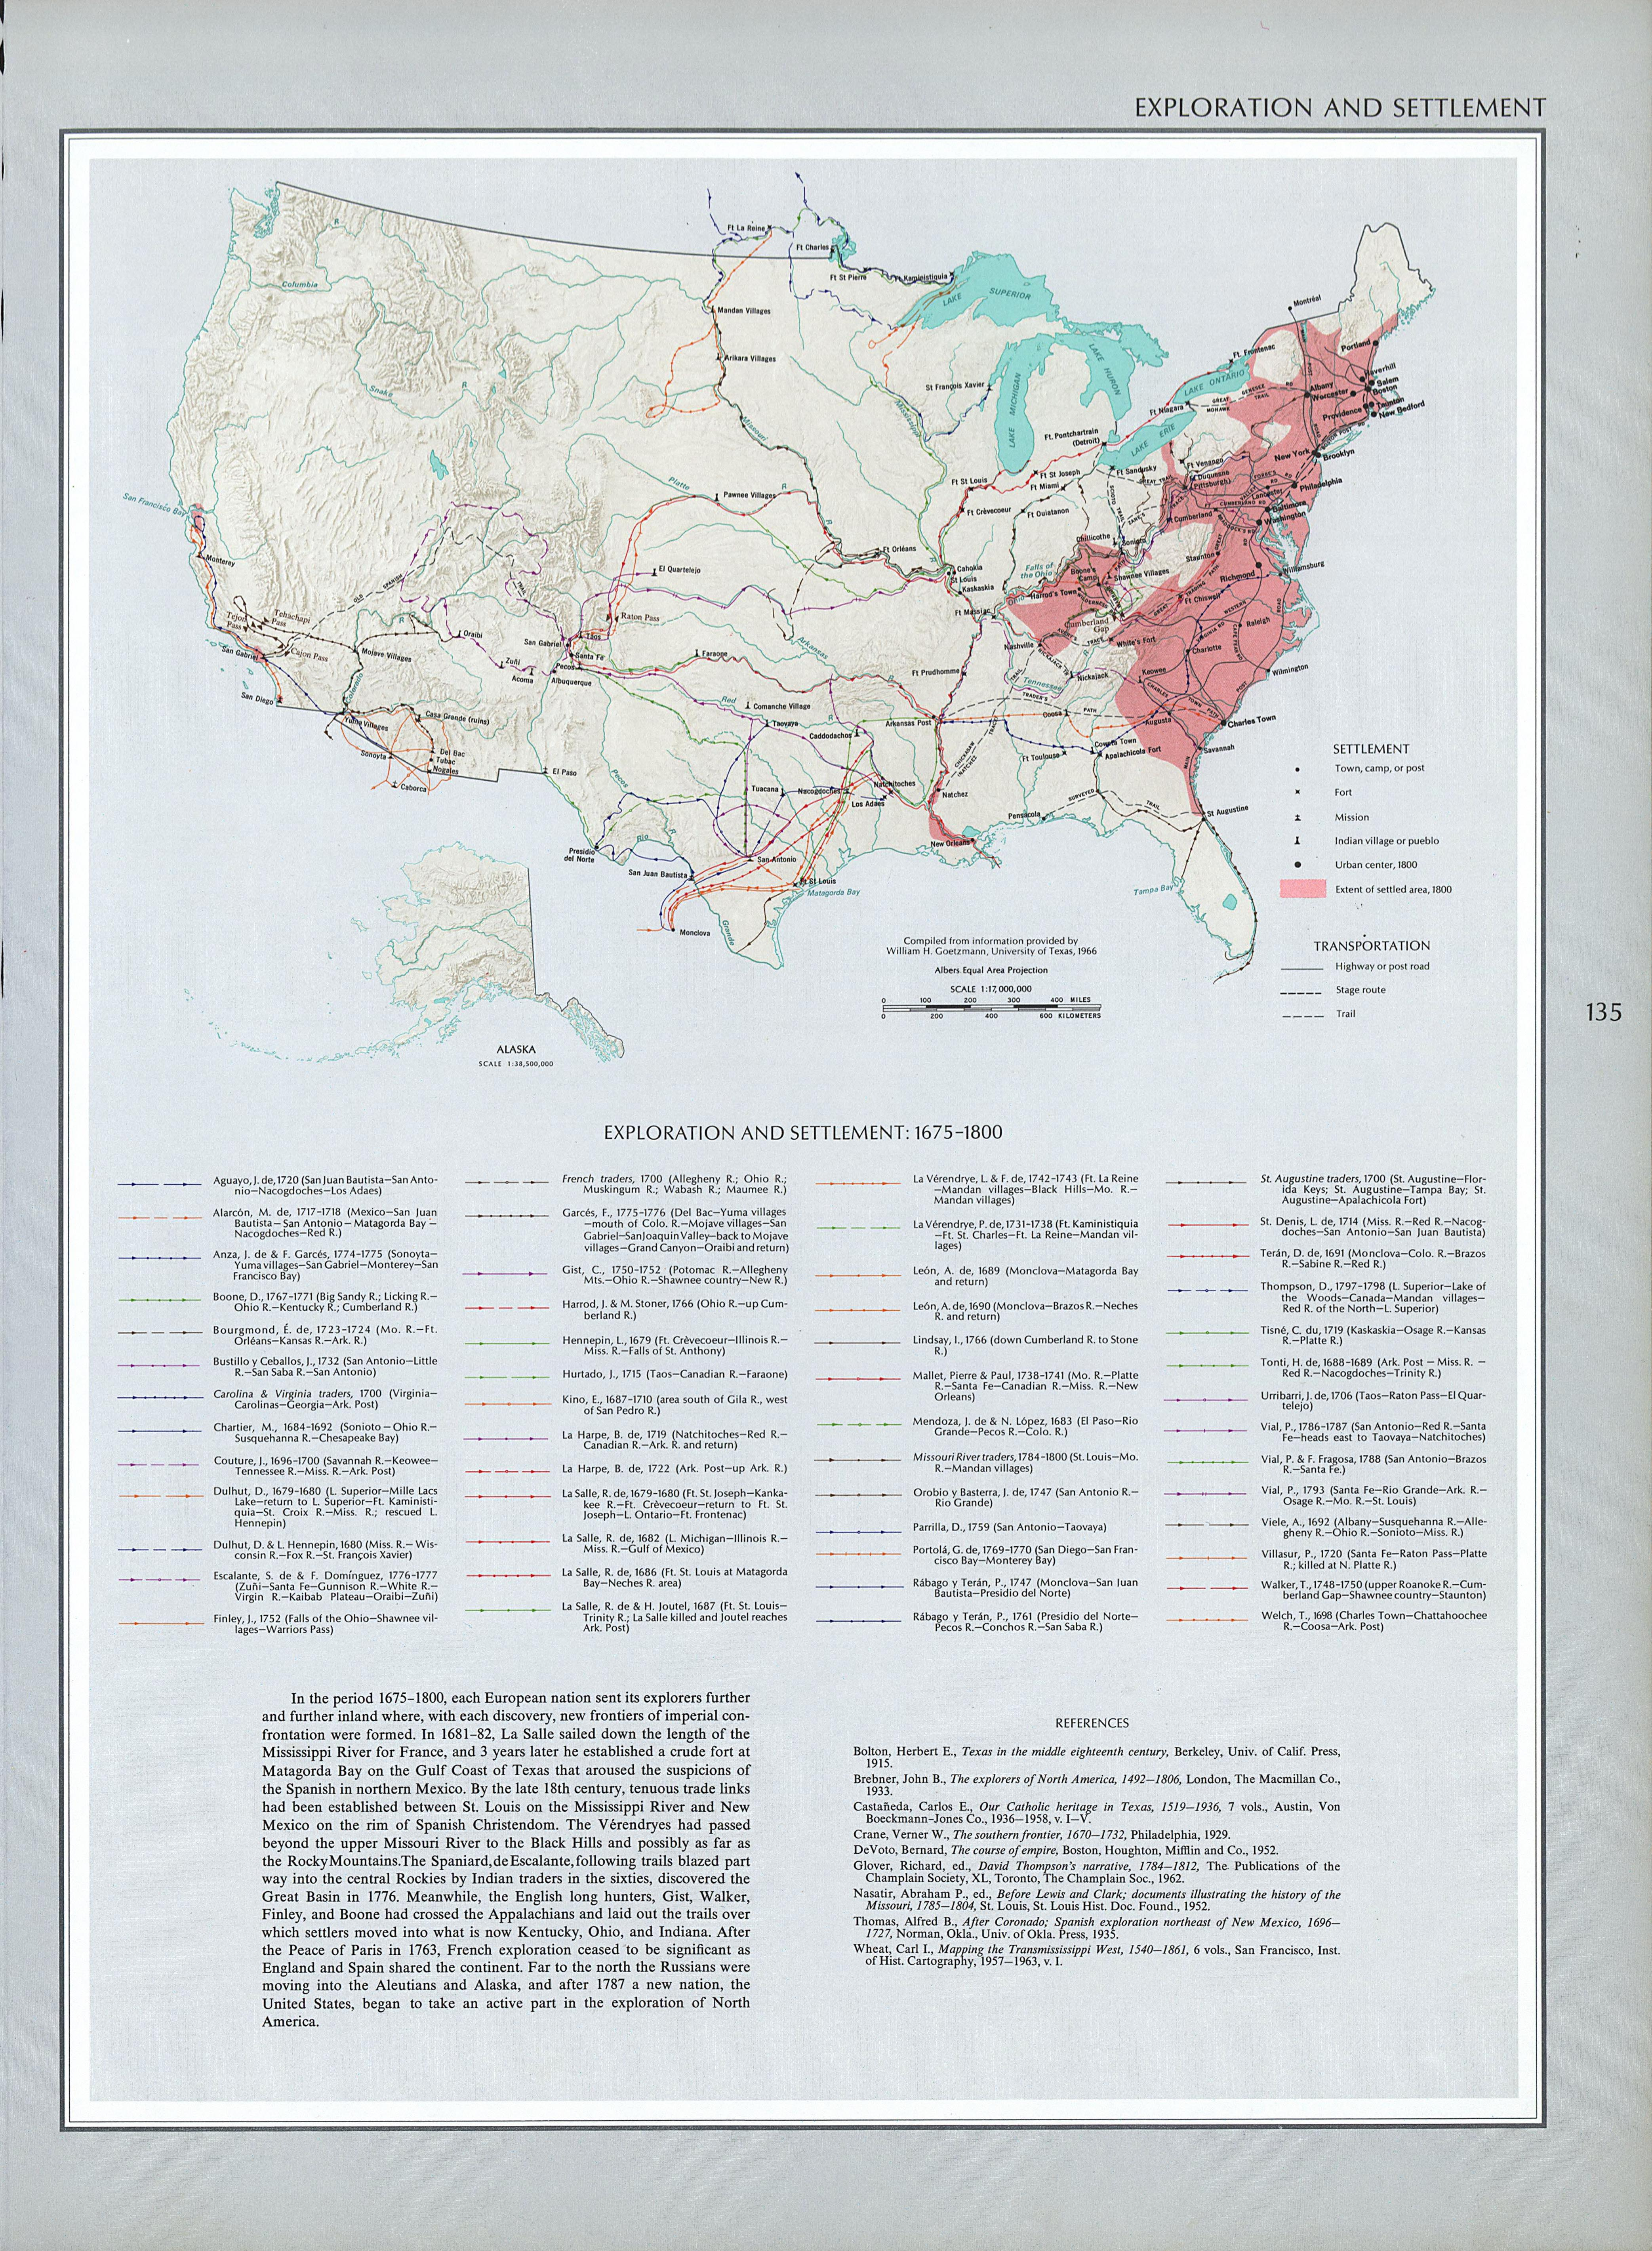 United States Territory Exploration and Settlement Map 1675 - 1800